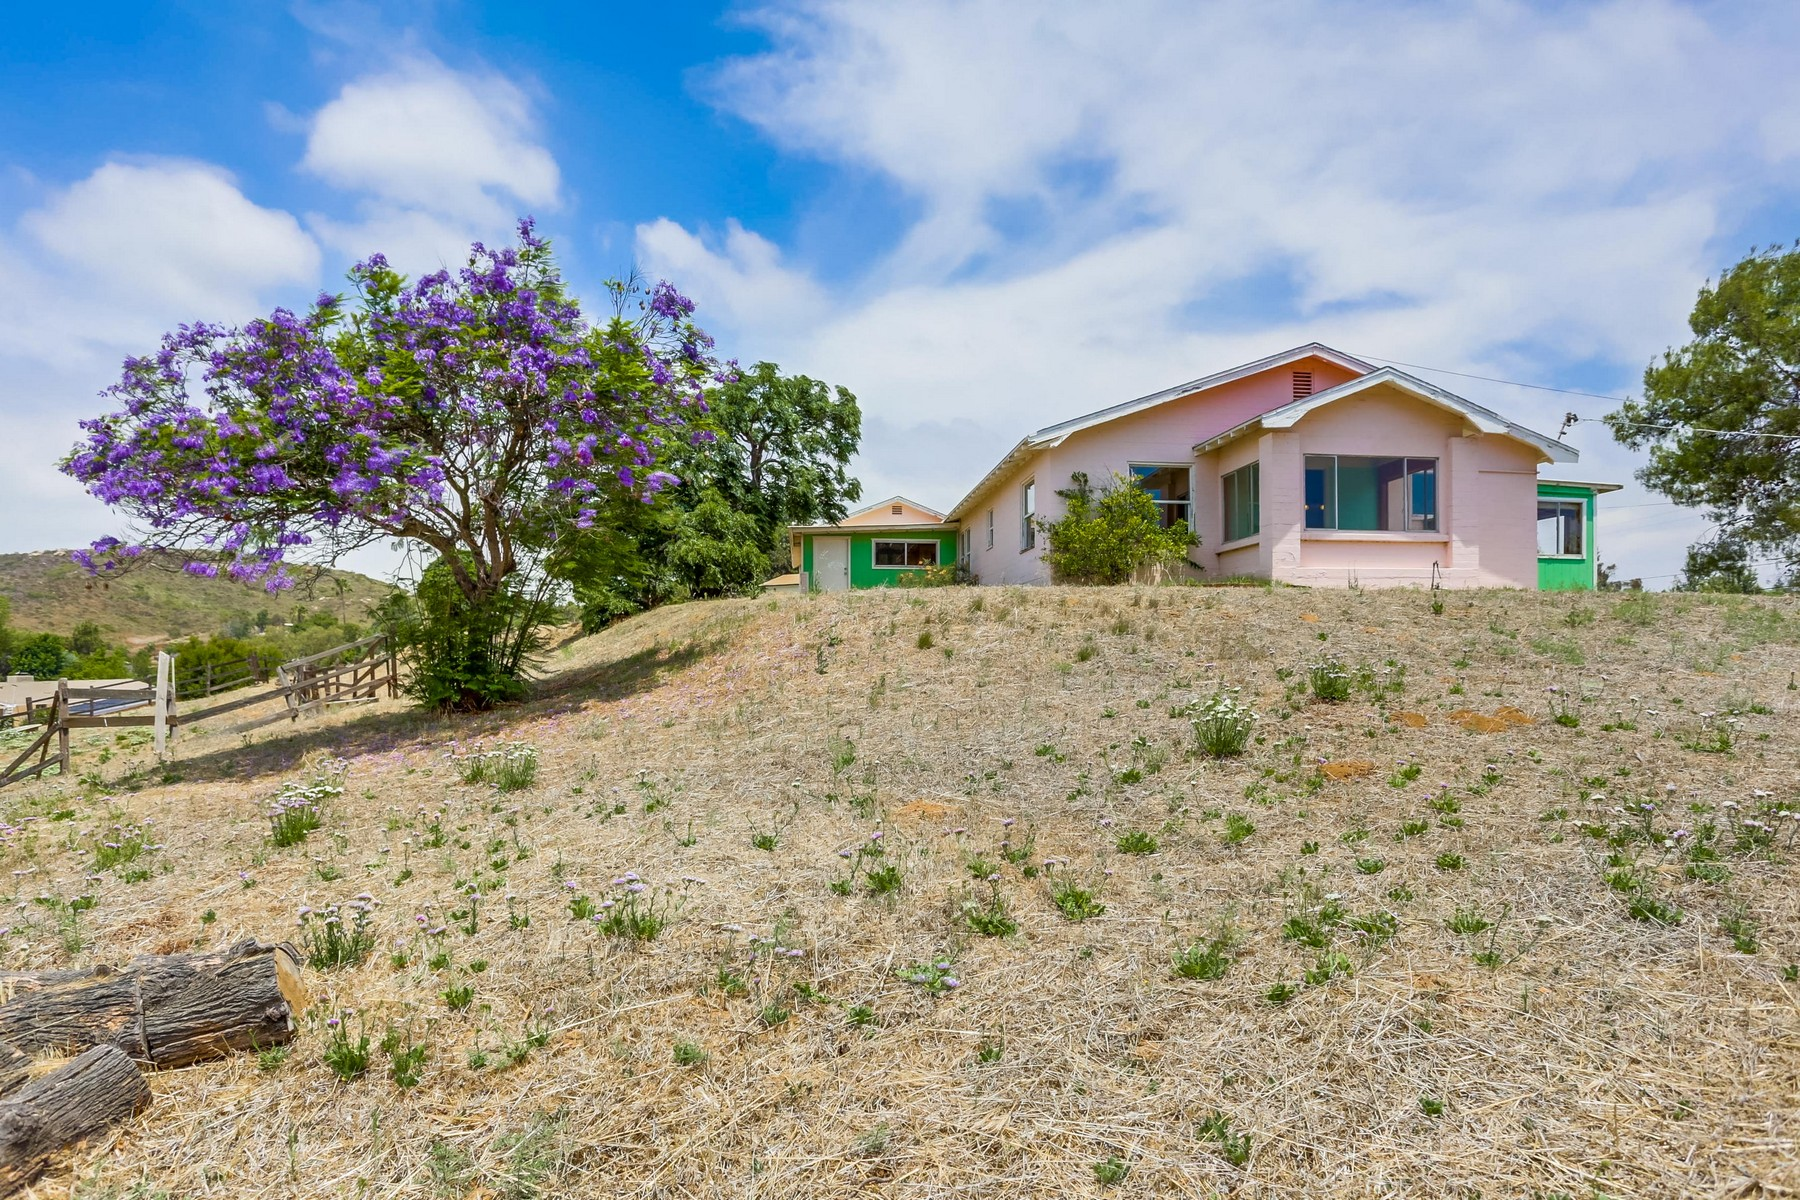 Single Family Homes for Sale at 3153 Pine Ln Spring Valley, California 91978 United States